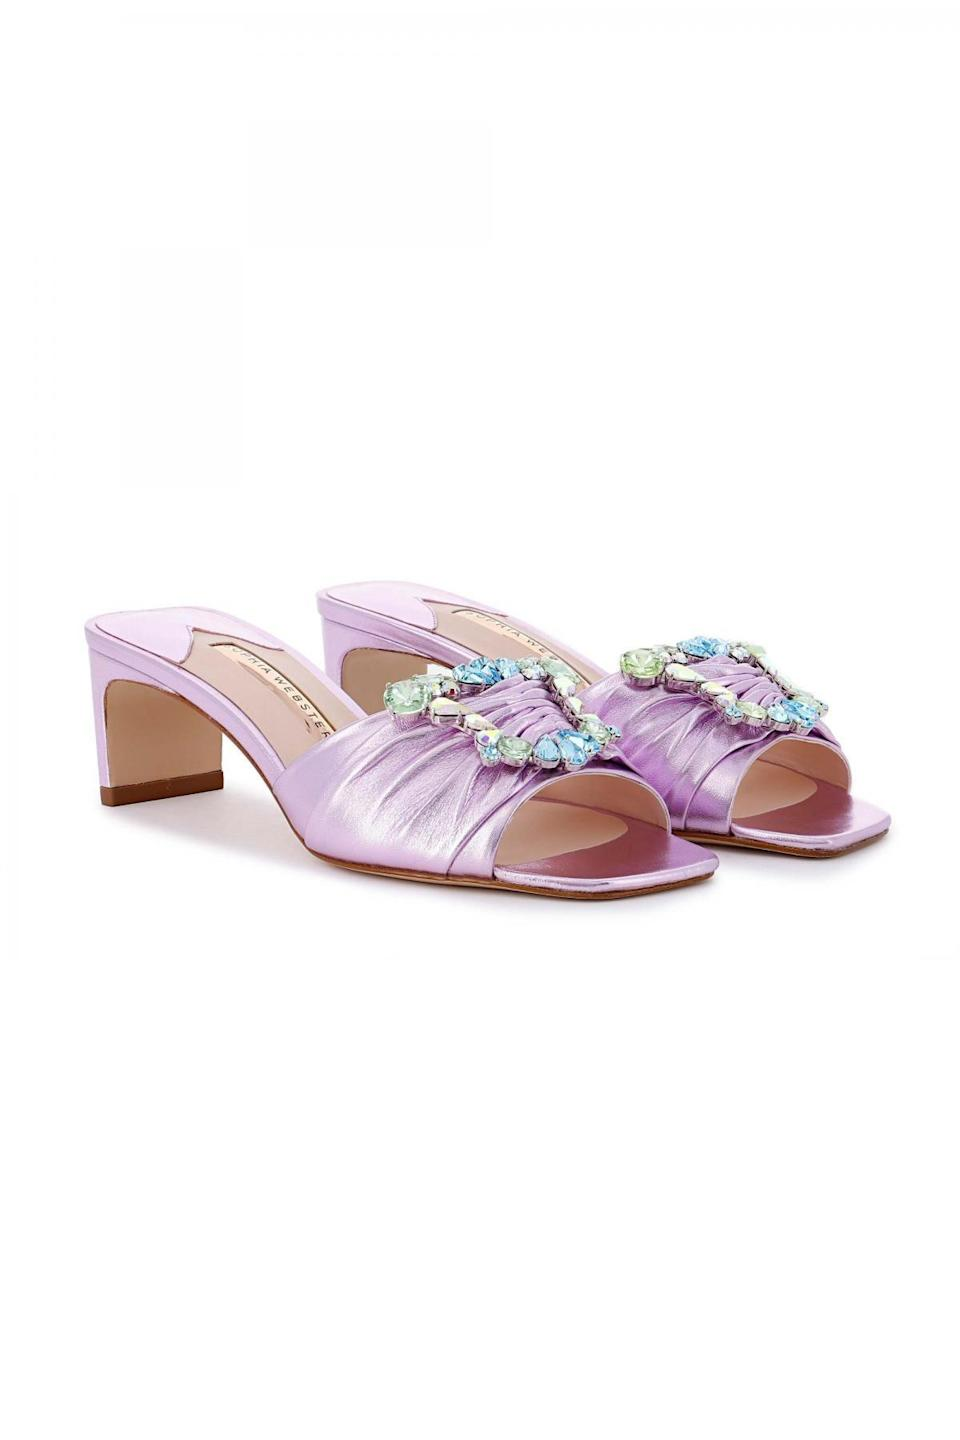 """<p><strong>Sophia Webster</strong></p><p>sophiawebster.com</p><p><strong>$695.00</strong></p><p><a href=""""https://www.sophiawebster.com/product/32585/margaux-mule"""" rel=""""nofollow noopener"""" target=""""_blank"""" data-ylk=""""slk:Shop Now"""" class=""""link rapid-noclick-resp"""">Shop Now</a></p><p>Icy pink ruching and crystal buckles feel like something Cher Horowitz would throw on in 2021 to meet Dionne at The Ivy for a drink.</p>"""